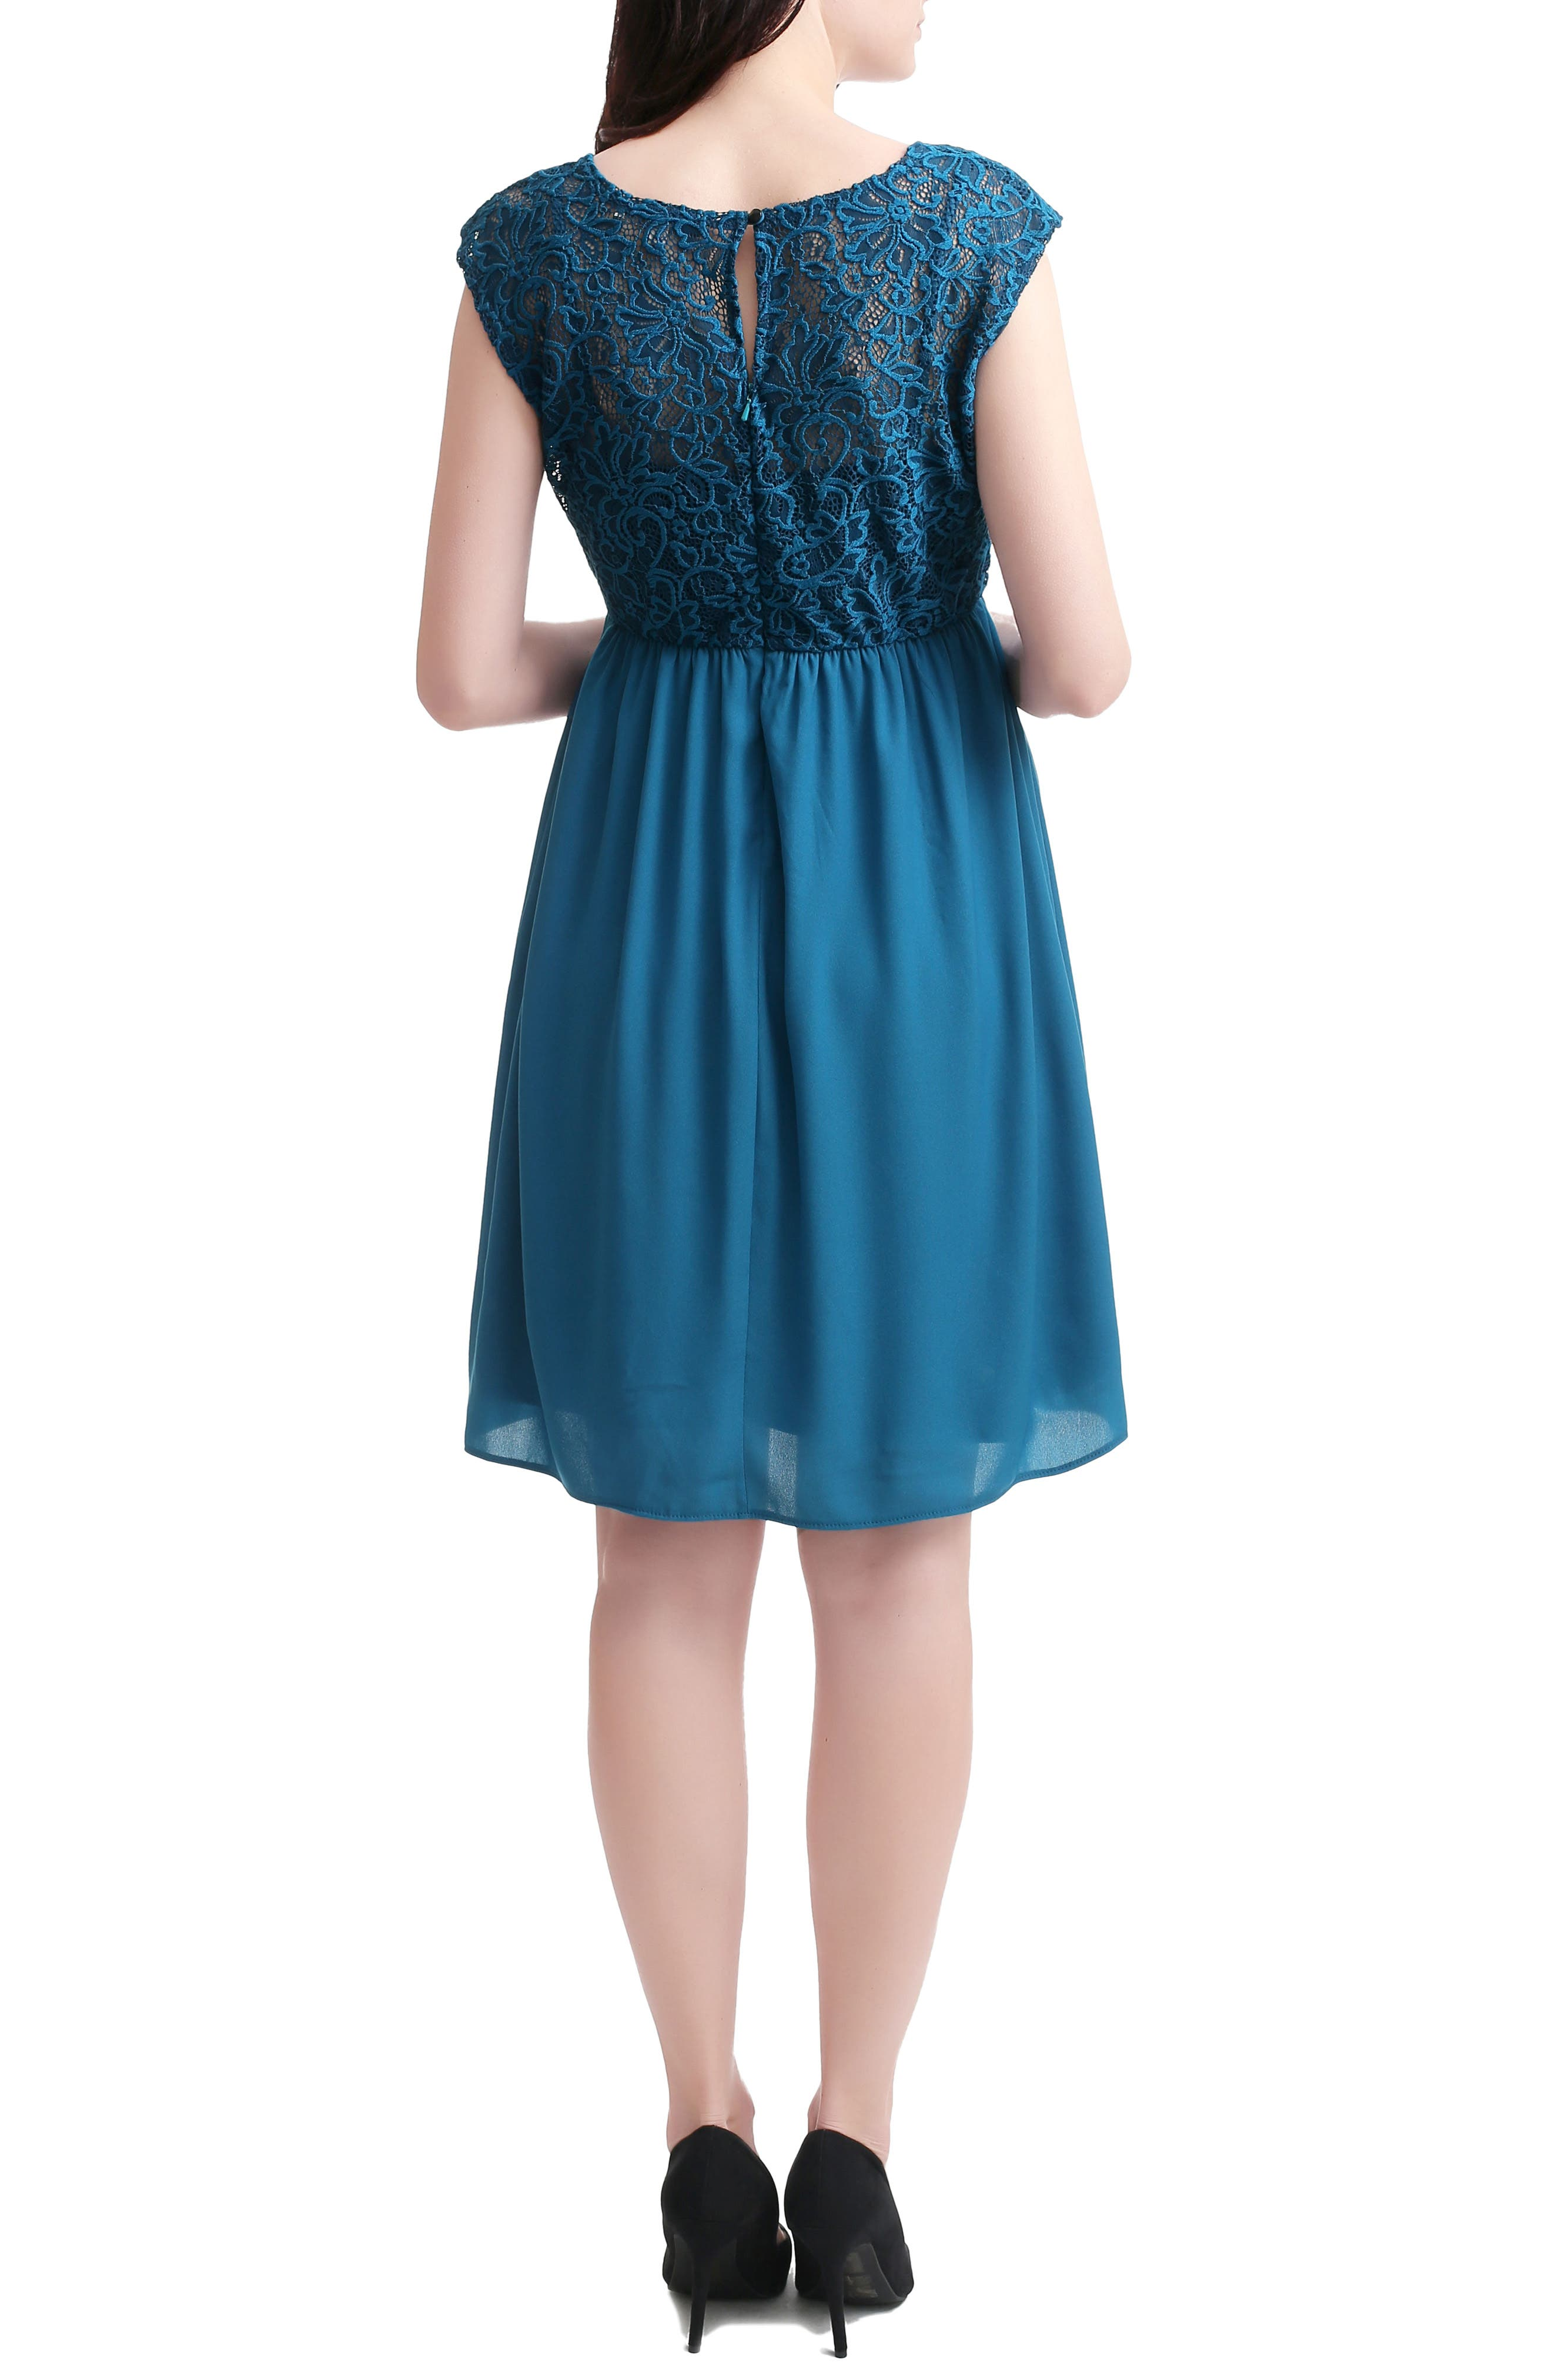 Kimi And Kai Genevieve Lace Maternity Dress, Blue/green